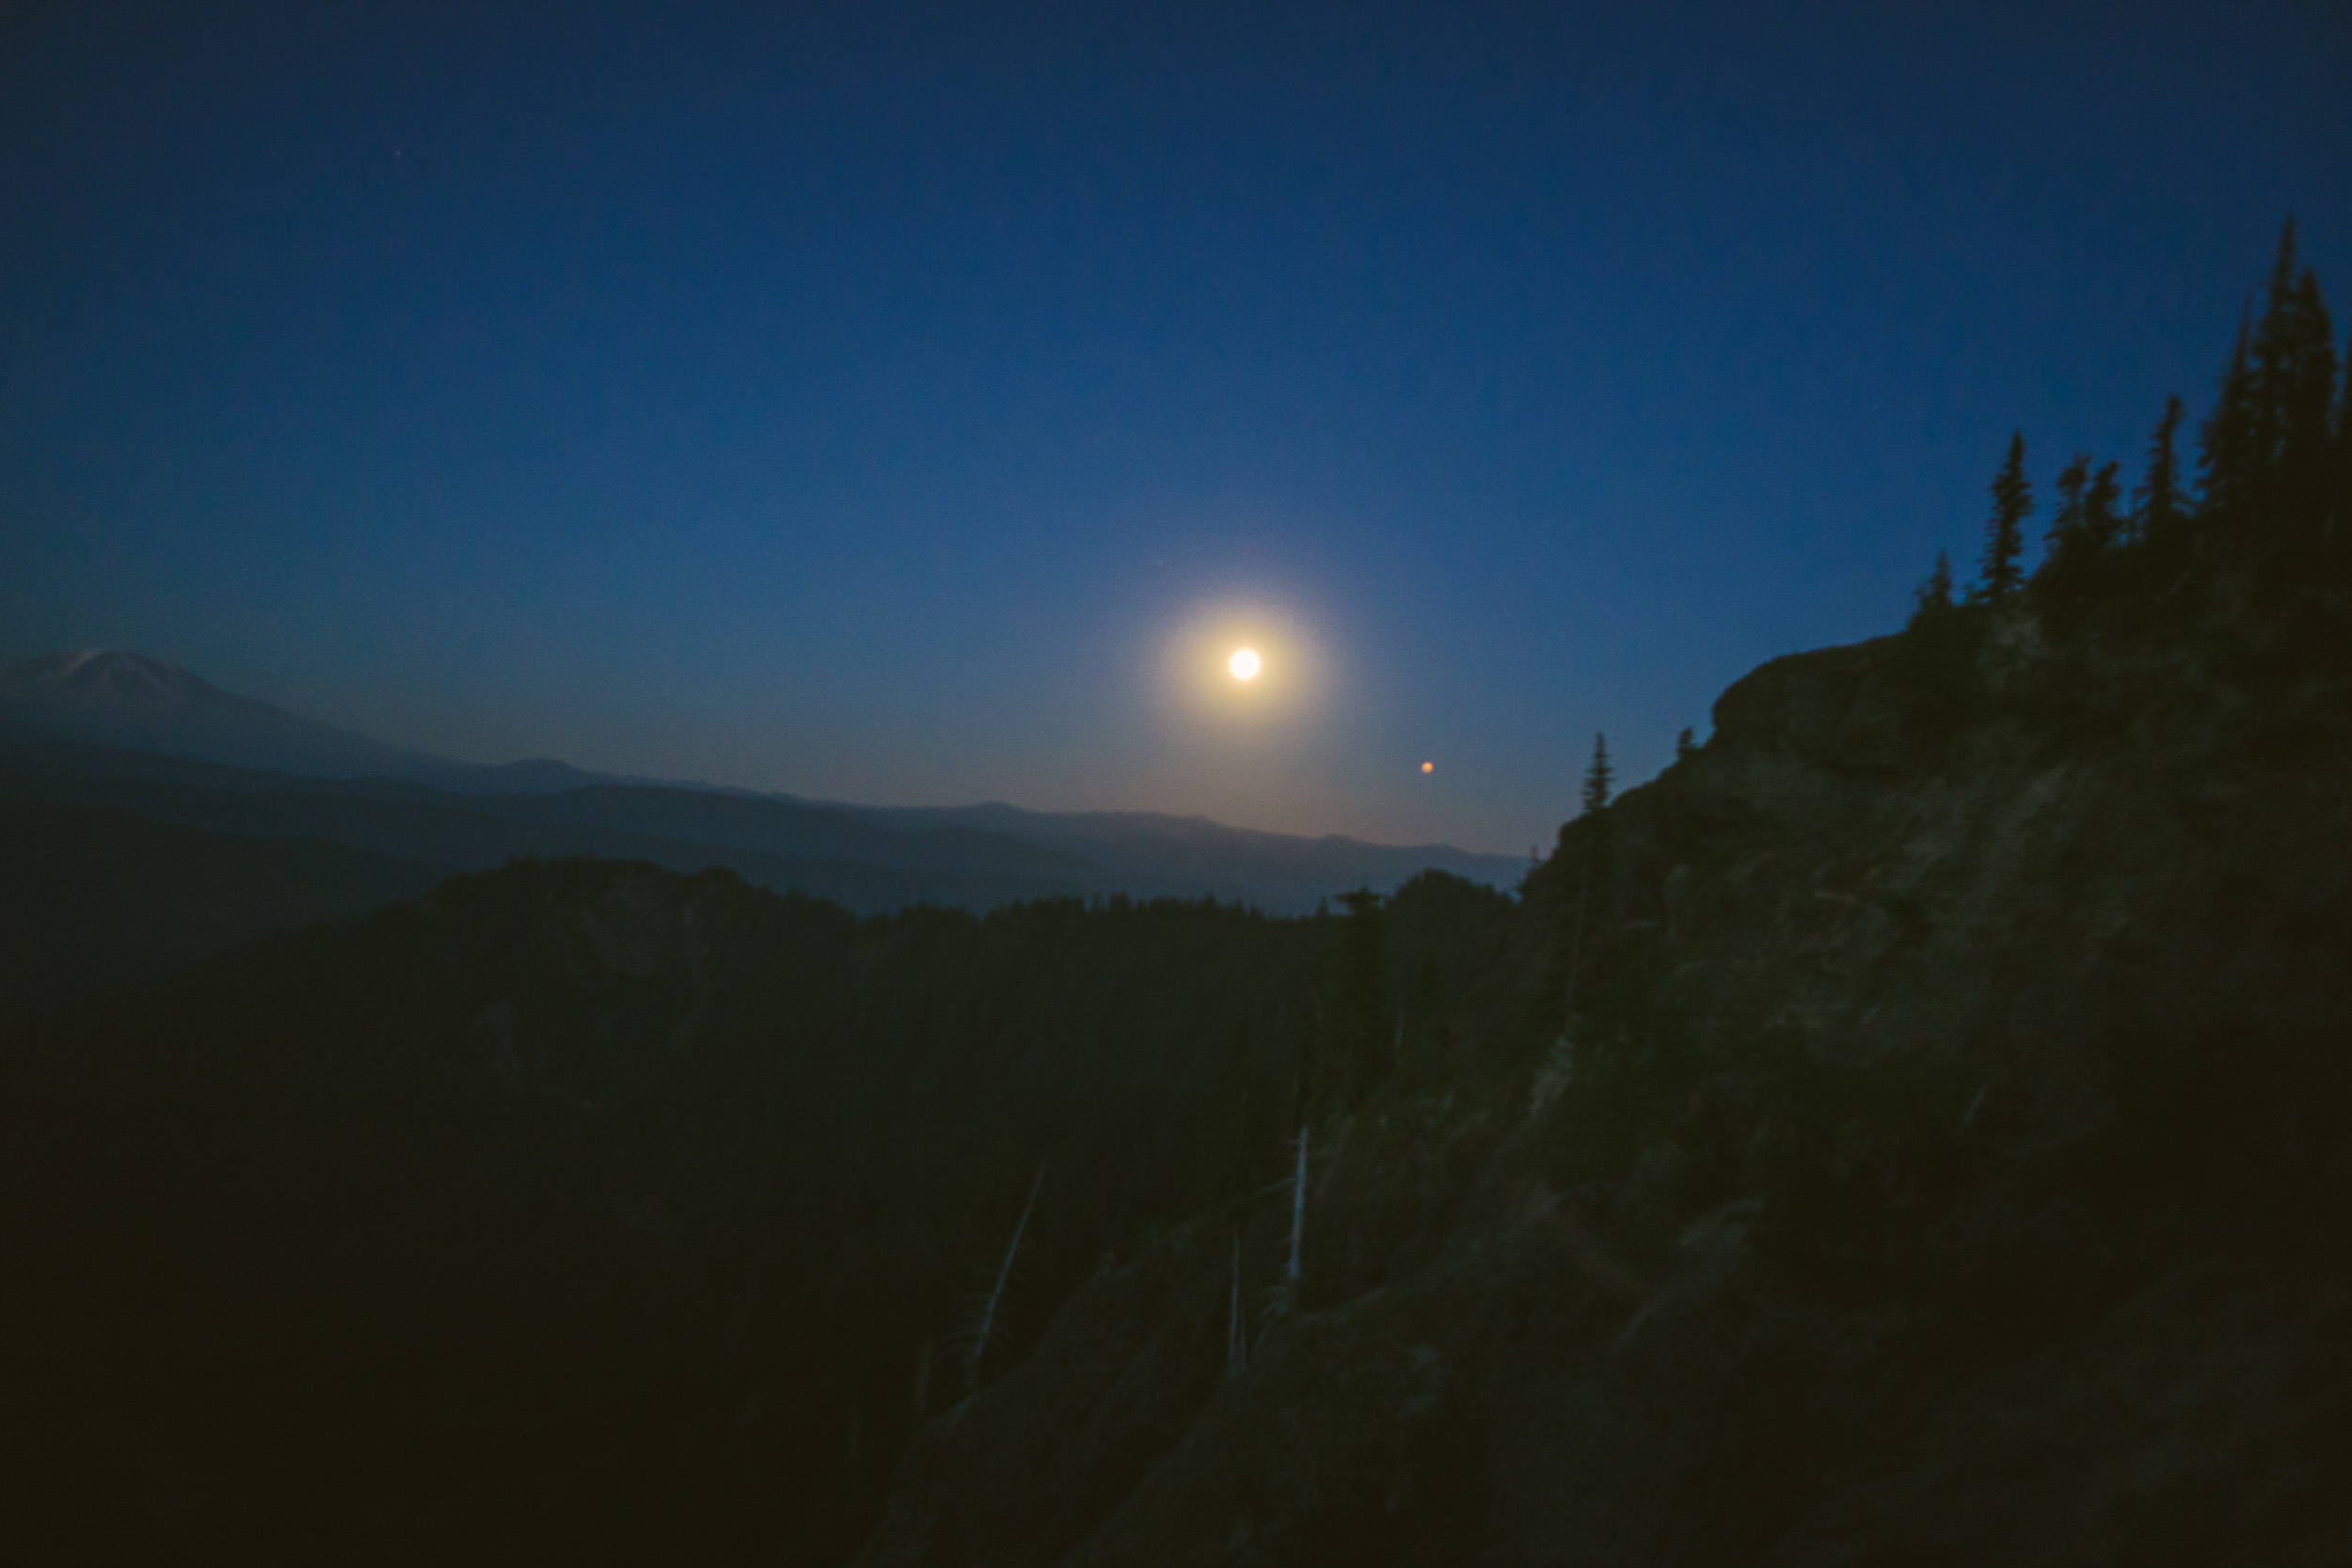 Full_Moon_Mt_St_Helens_57.jpg